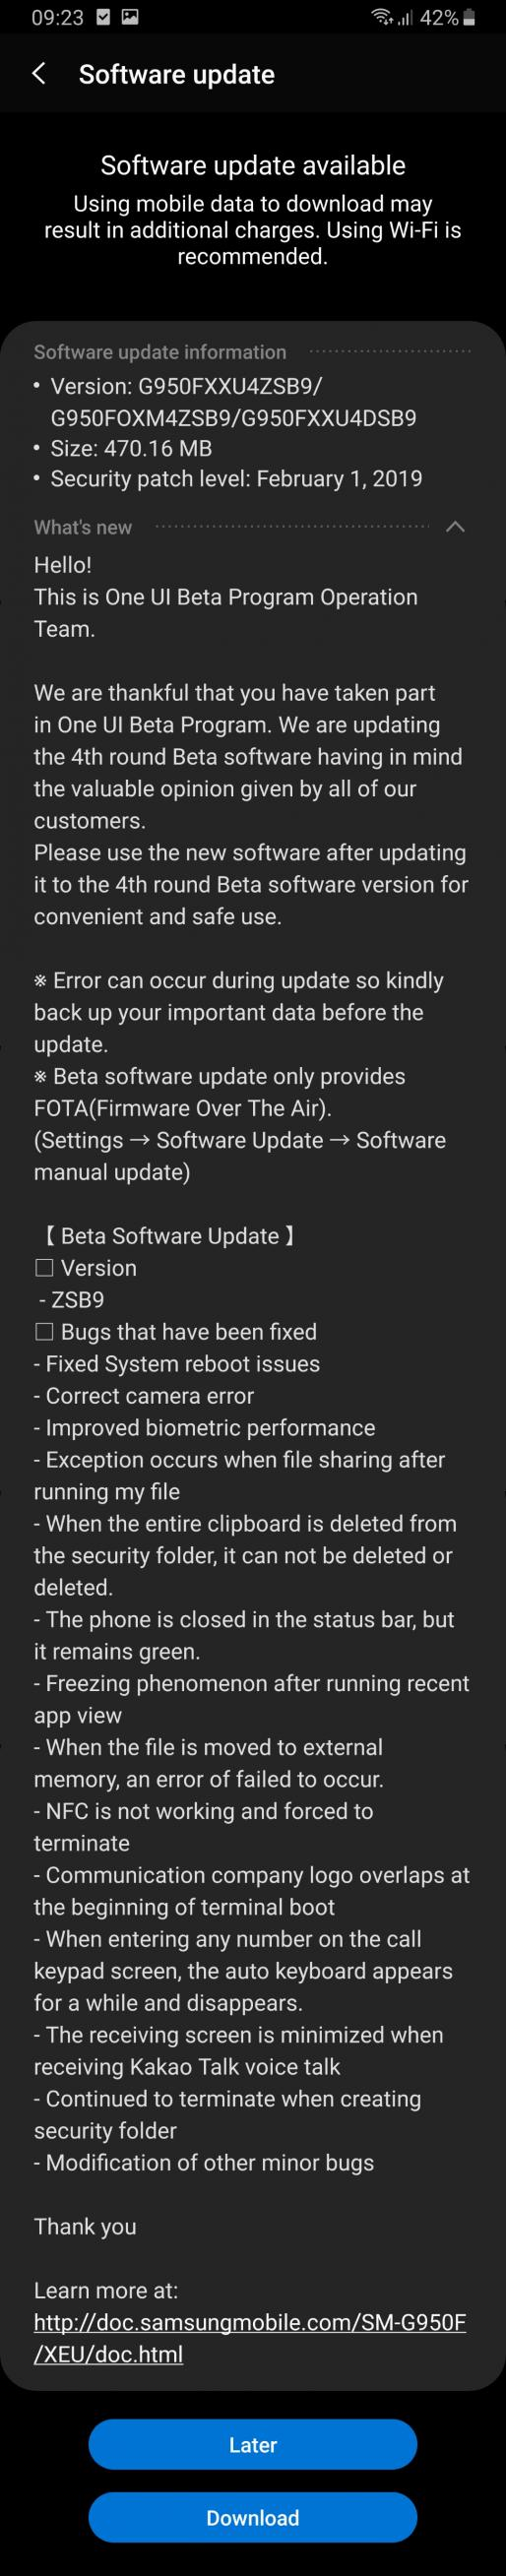 Fourth Android Pie beta for Galaxy S8 and S8+ released